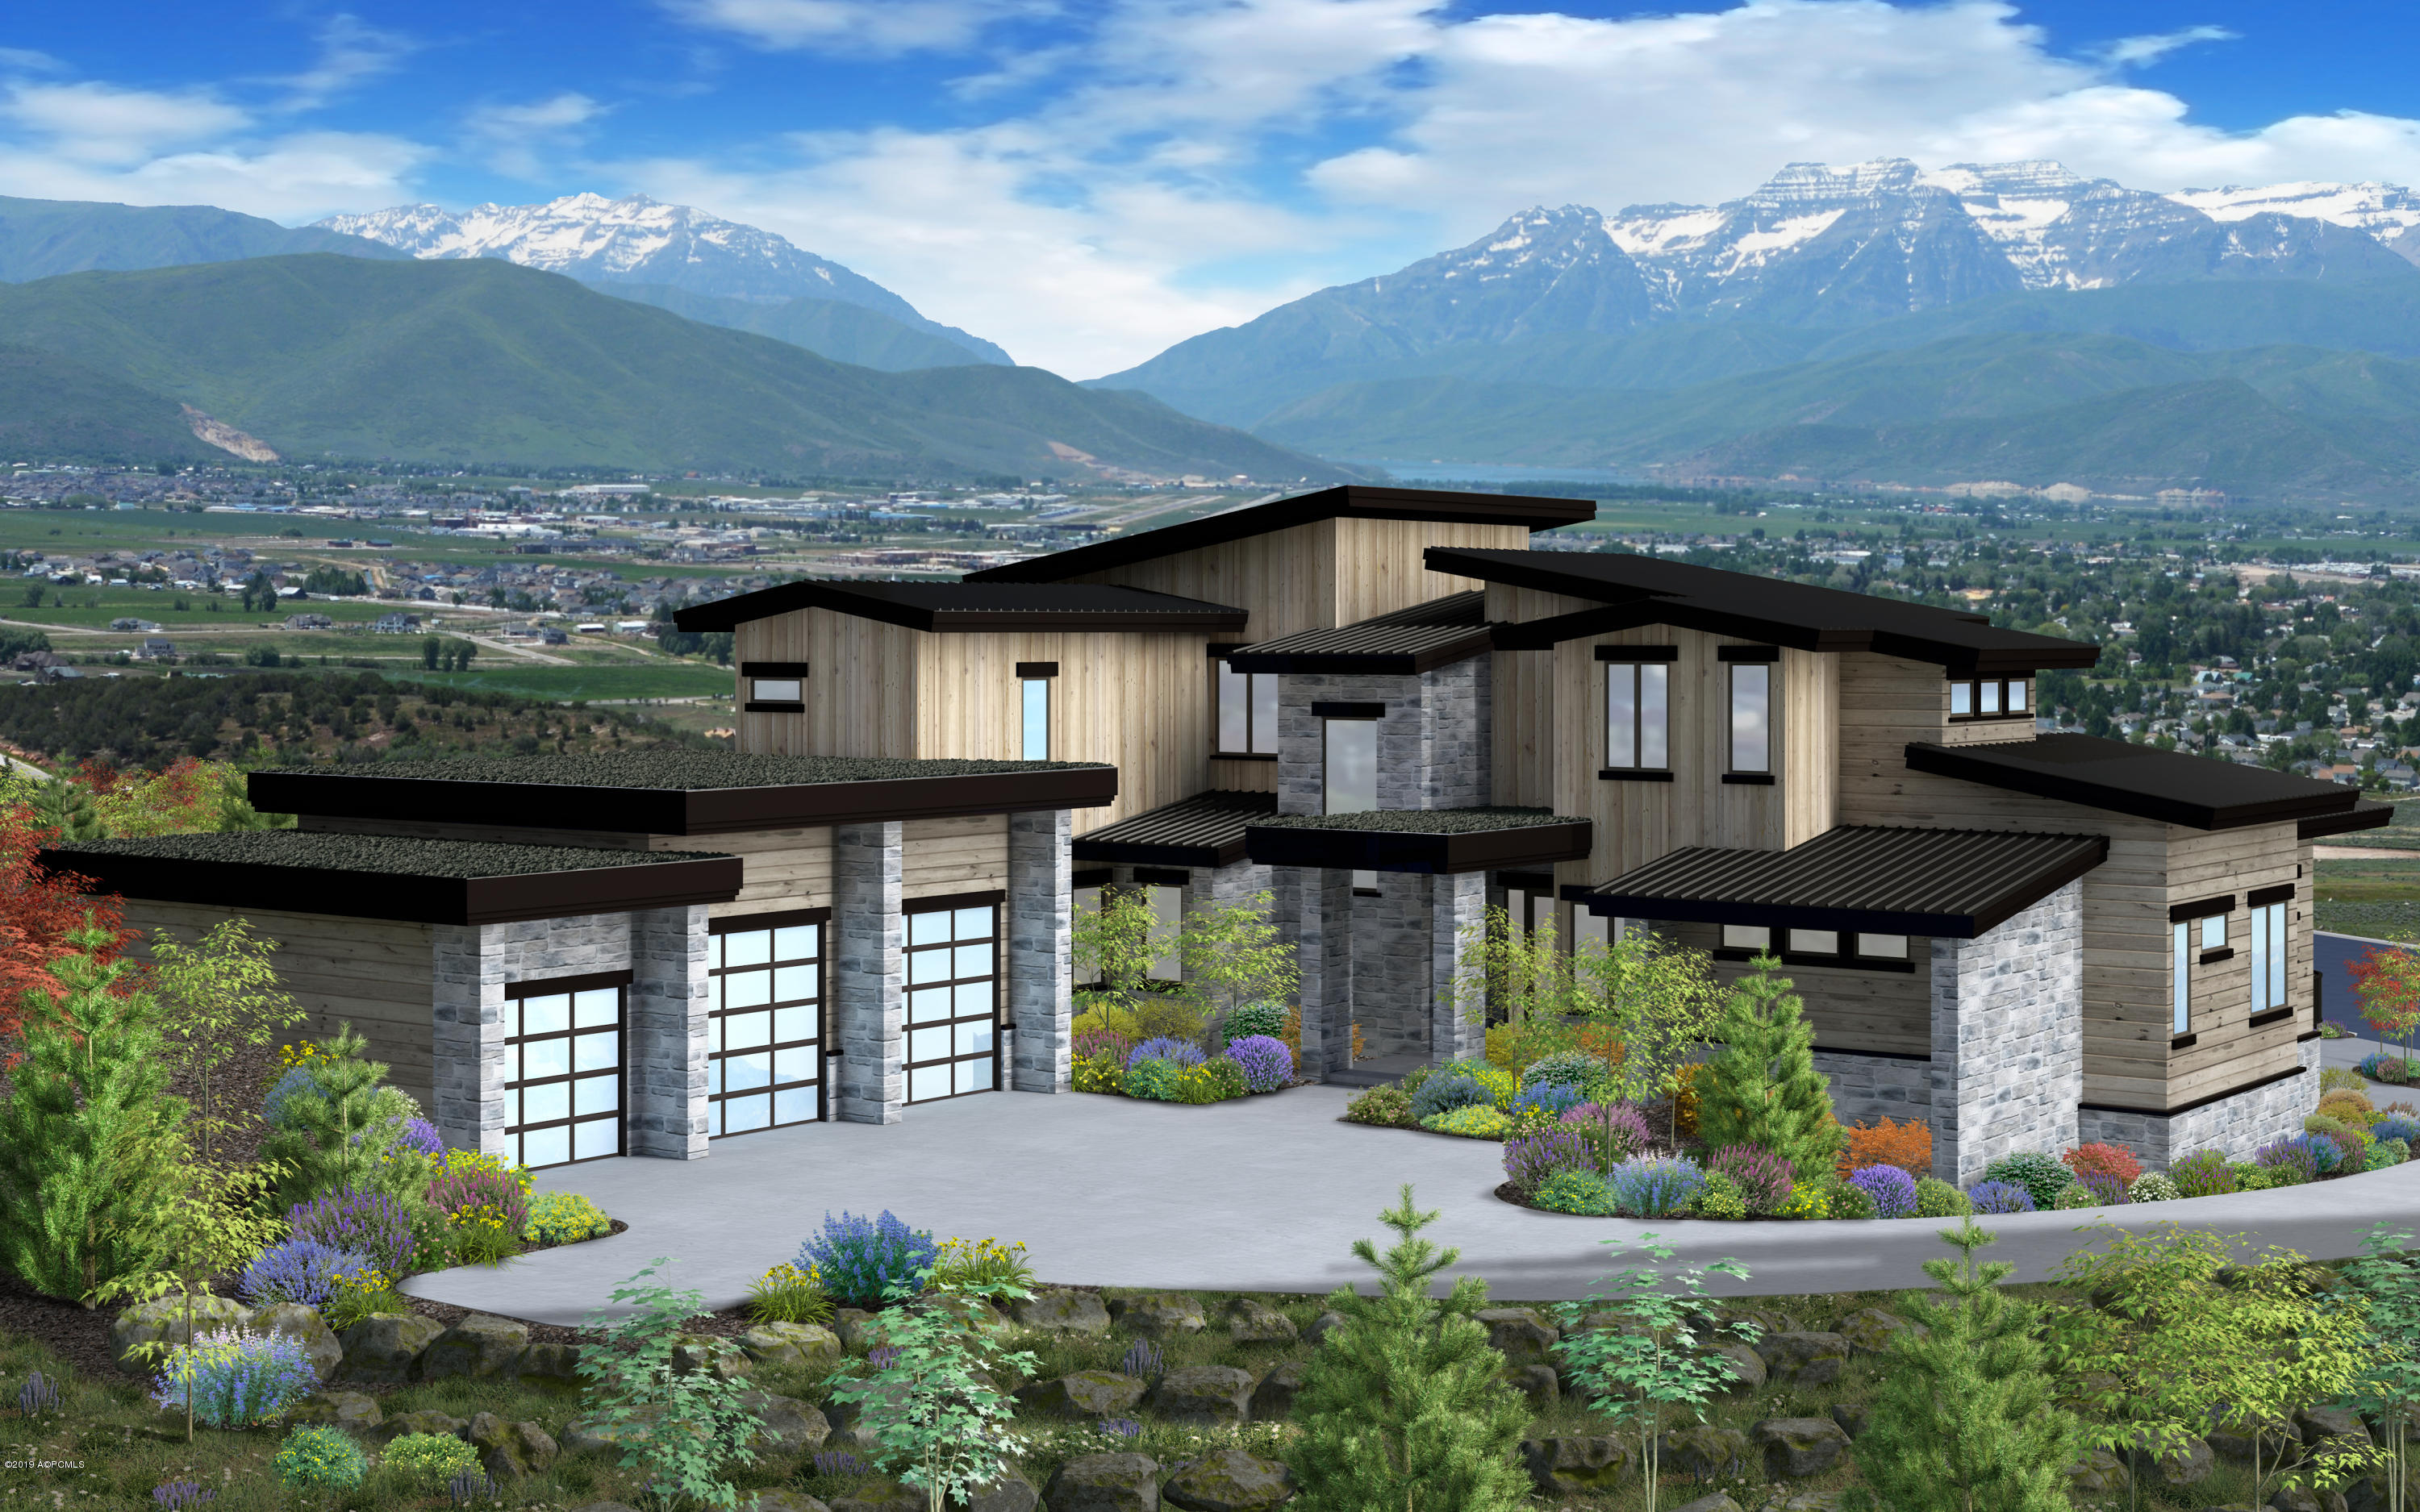 1548 N Explorer Peak Drive (Lot 451)